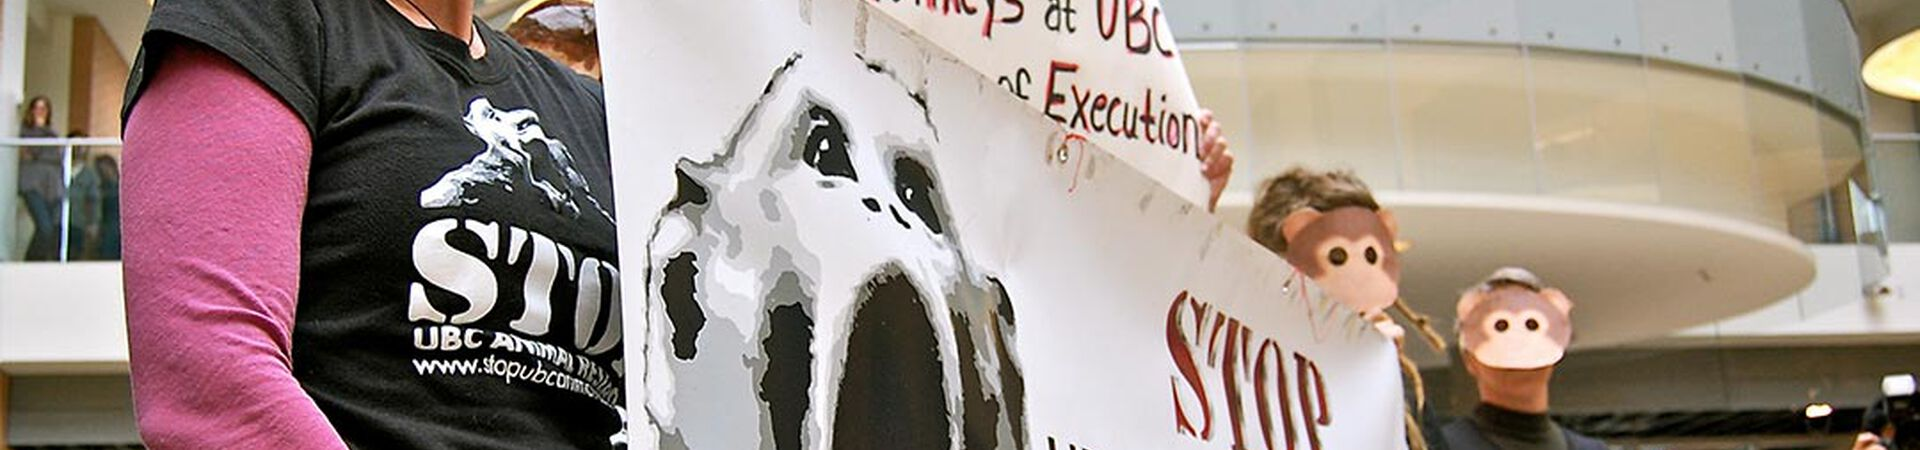 Banner - Animal Defence and Anti vivisection